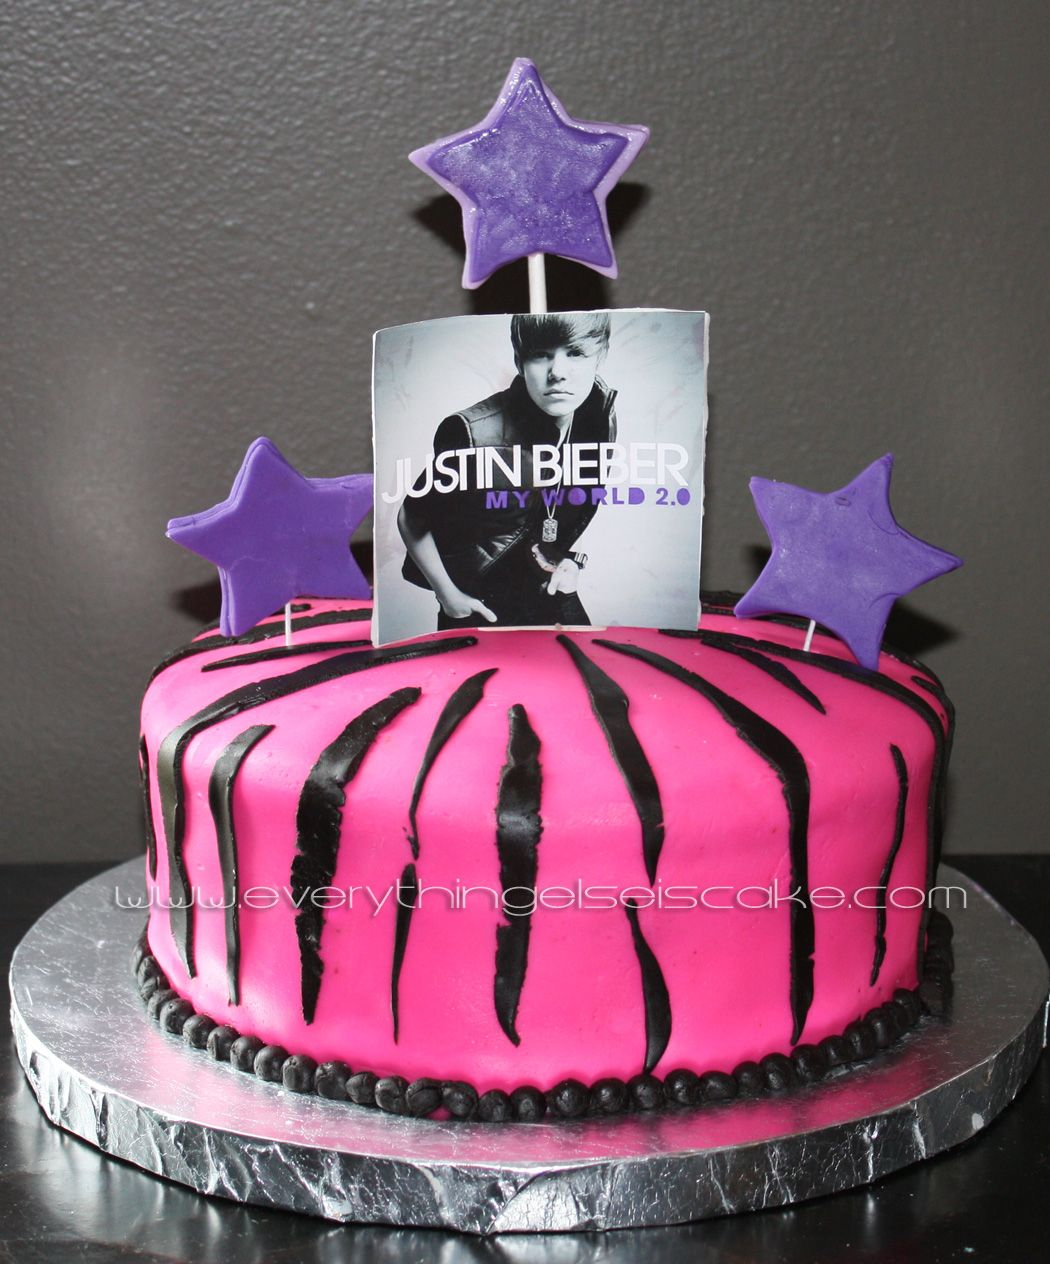 She Loves Justin Bieber Just Like Most All Girls In The Age Seem To Right Now My Youngest Daughter Wants A Jb Cake As